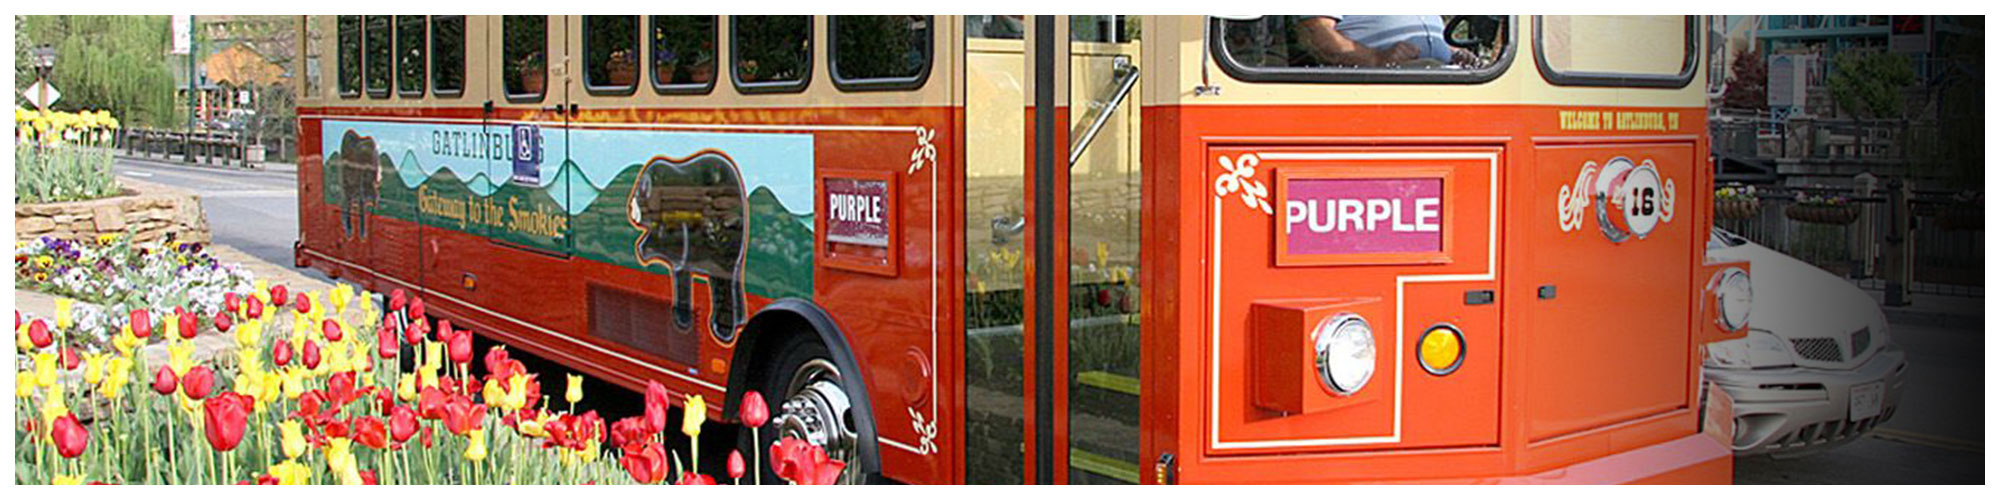 Trolley Routes Map (Header Background) | Gatlinburg Attractions